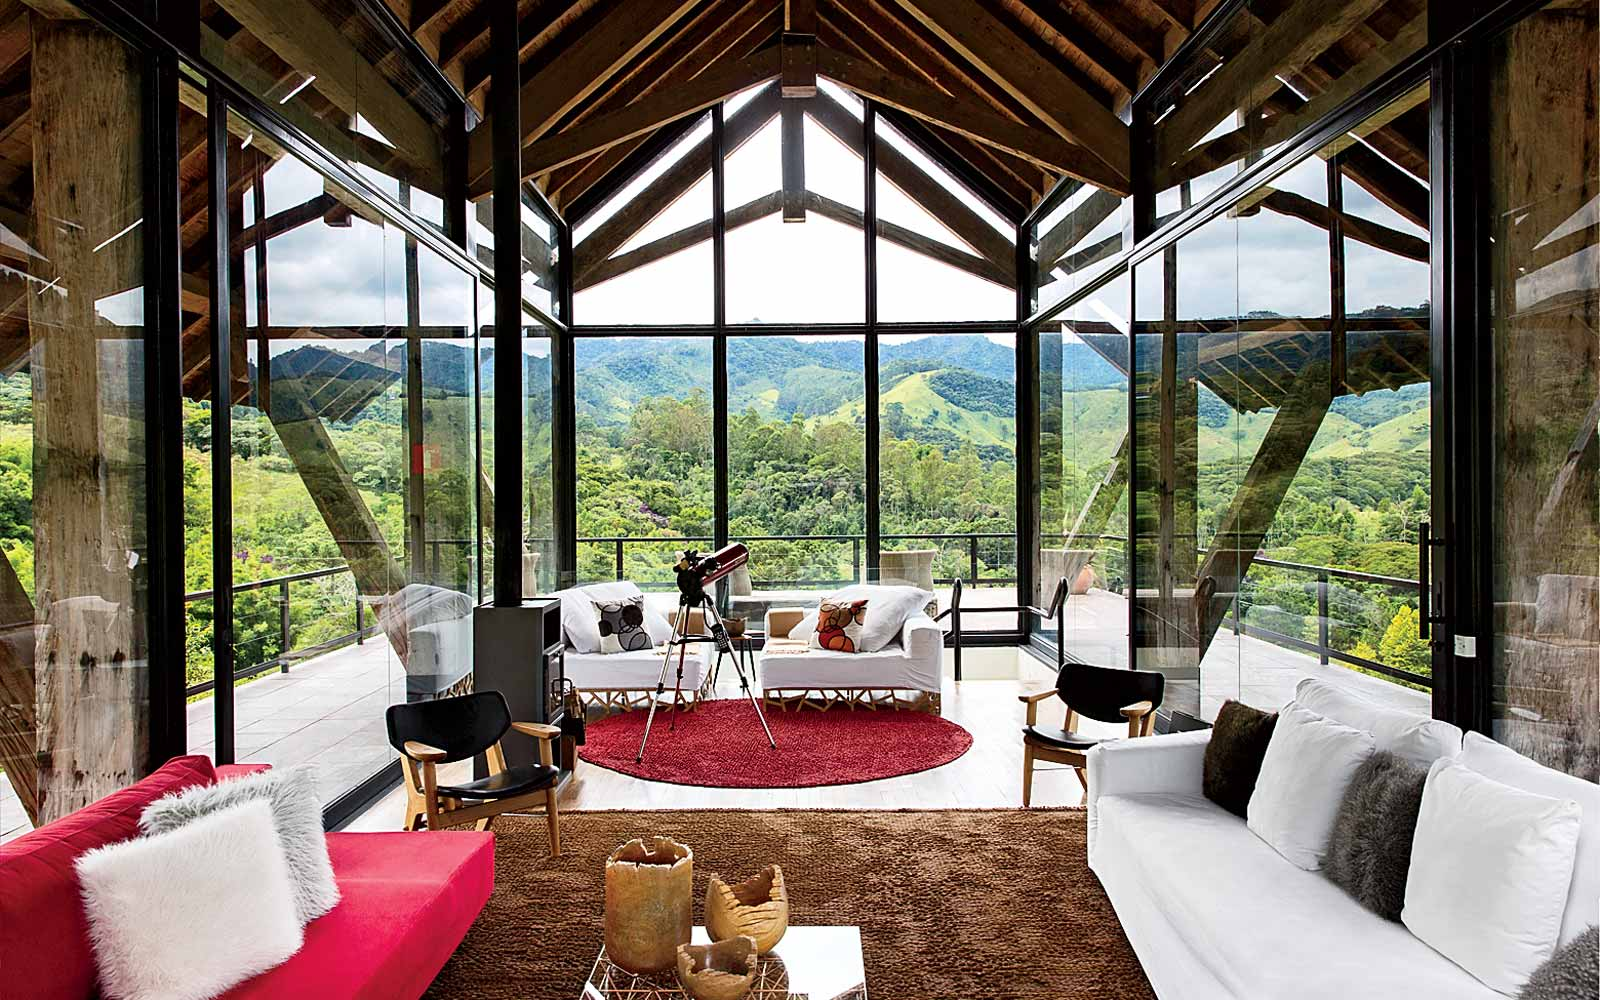 These Gorgeous Mountain Resorts Reveal Brazil's Quiet Side